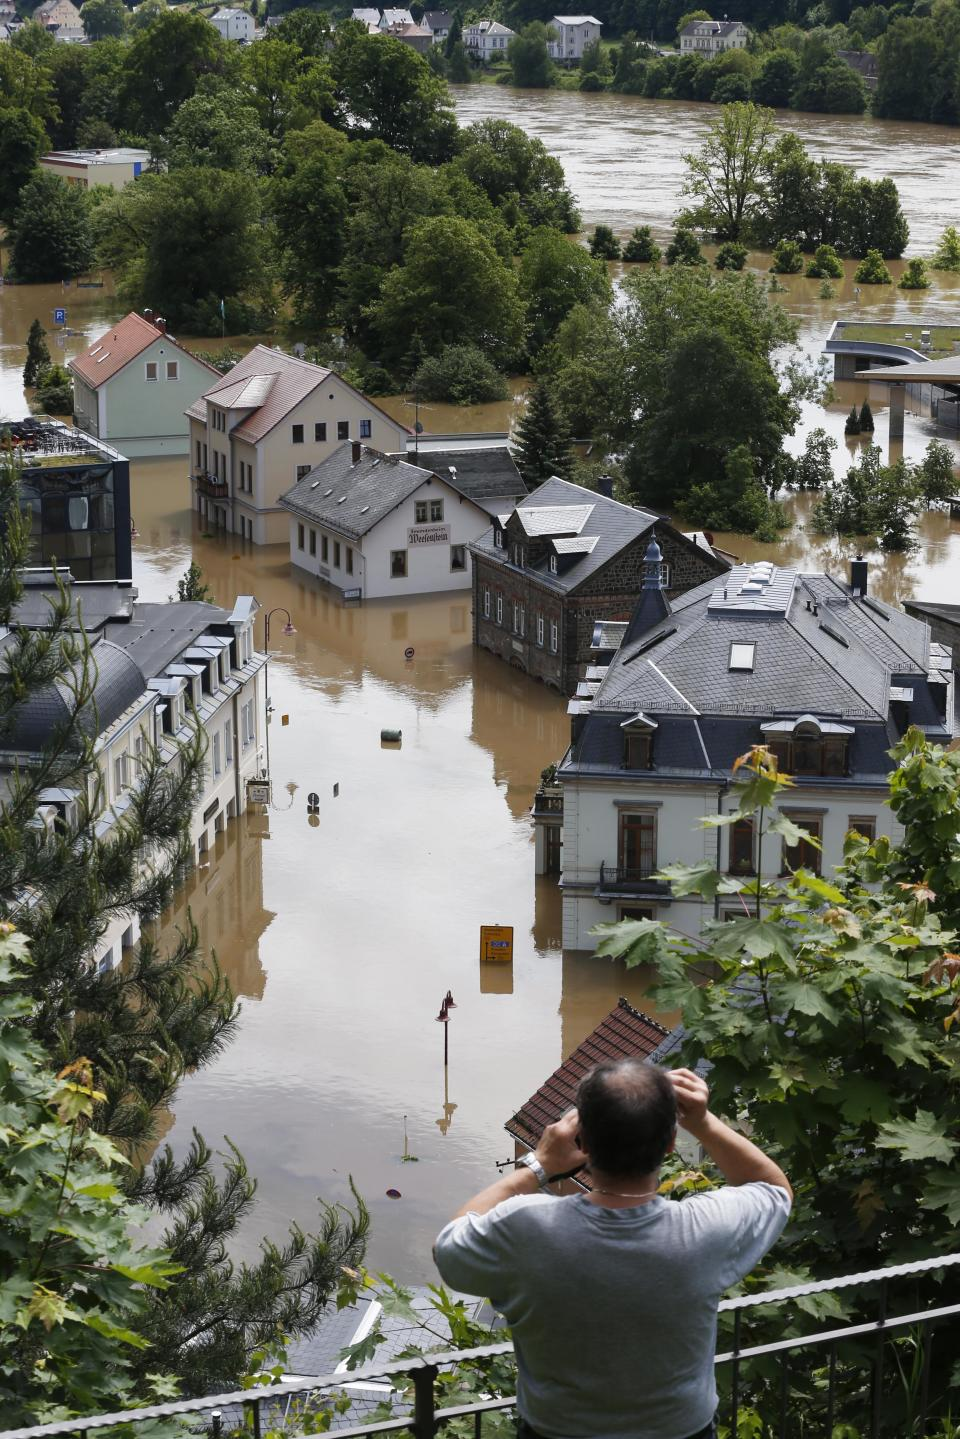 A man looks  looks at  the flooded streets of the city  of Bad Schandau near the German Czech boarder in Saxony, Germany, Wednesday, June 5, 2013.  Heavy rainfalls   caused flooding in parts of Germany, Austria and Czech Republic.  (AP Photo/Markus Schreiber)